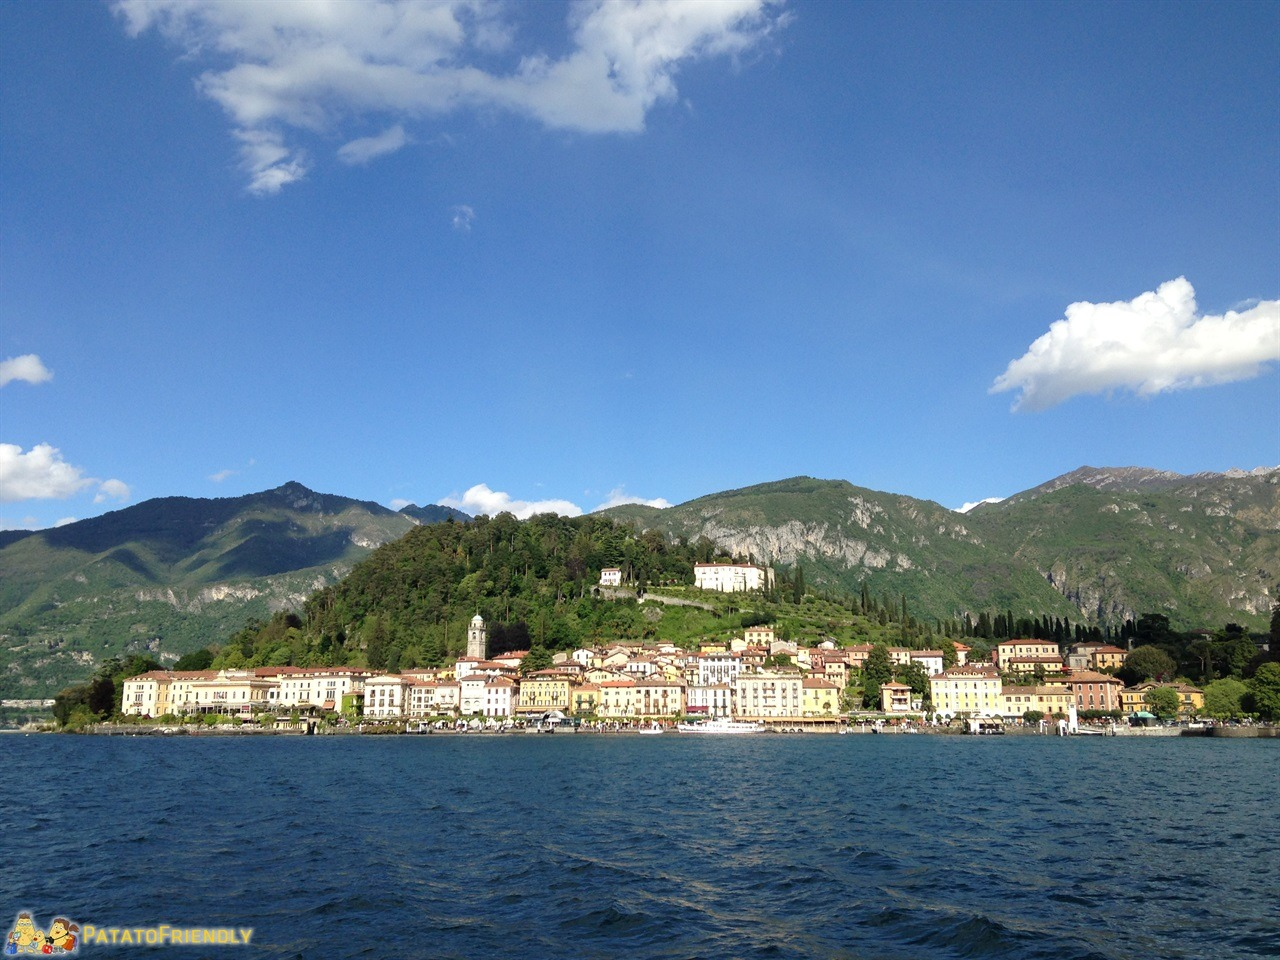 [cml_media_alt id='6189']Bellagio - Vista dal traghetto[/cml_media_alt]